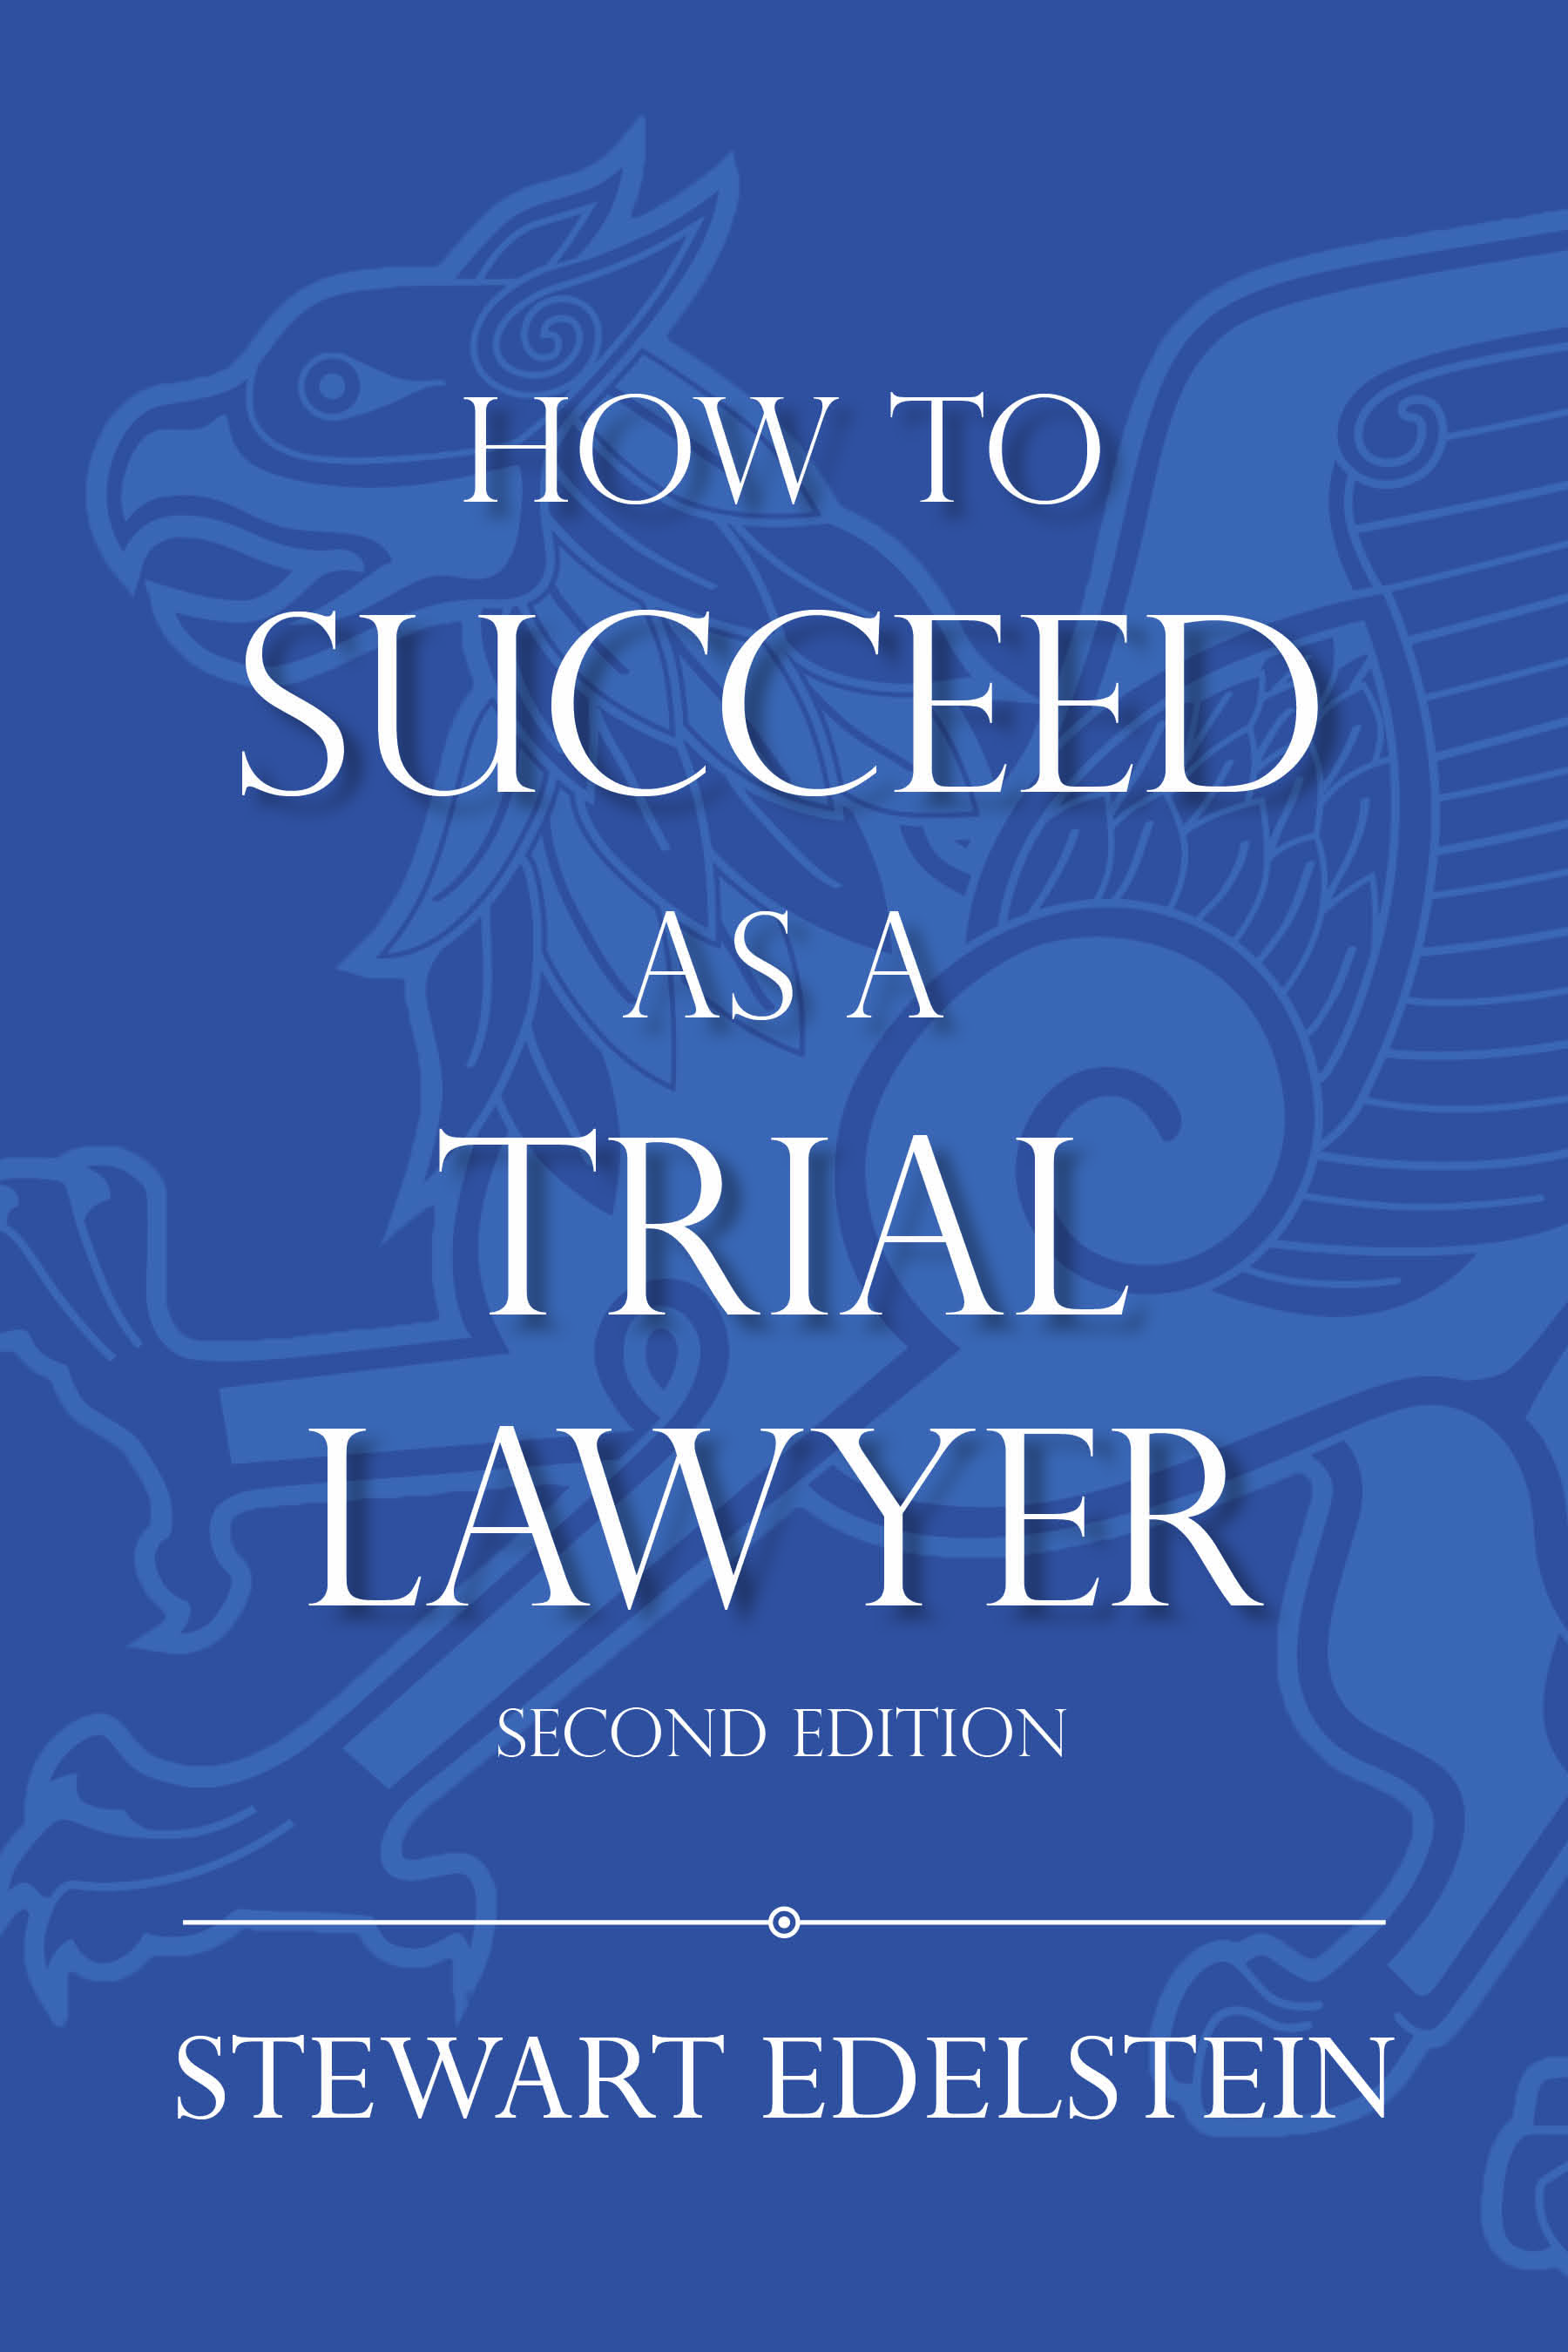 How to Succeed as a Trial Lawyer, Second Edition